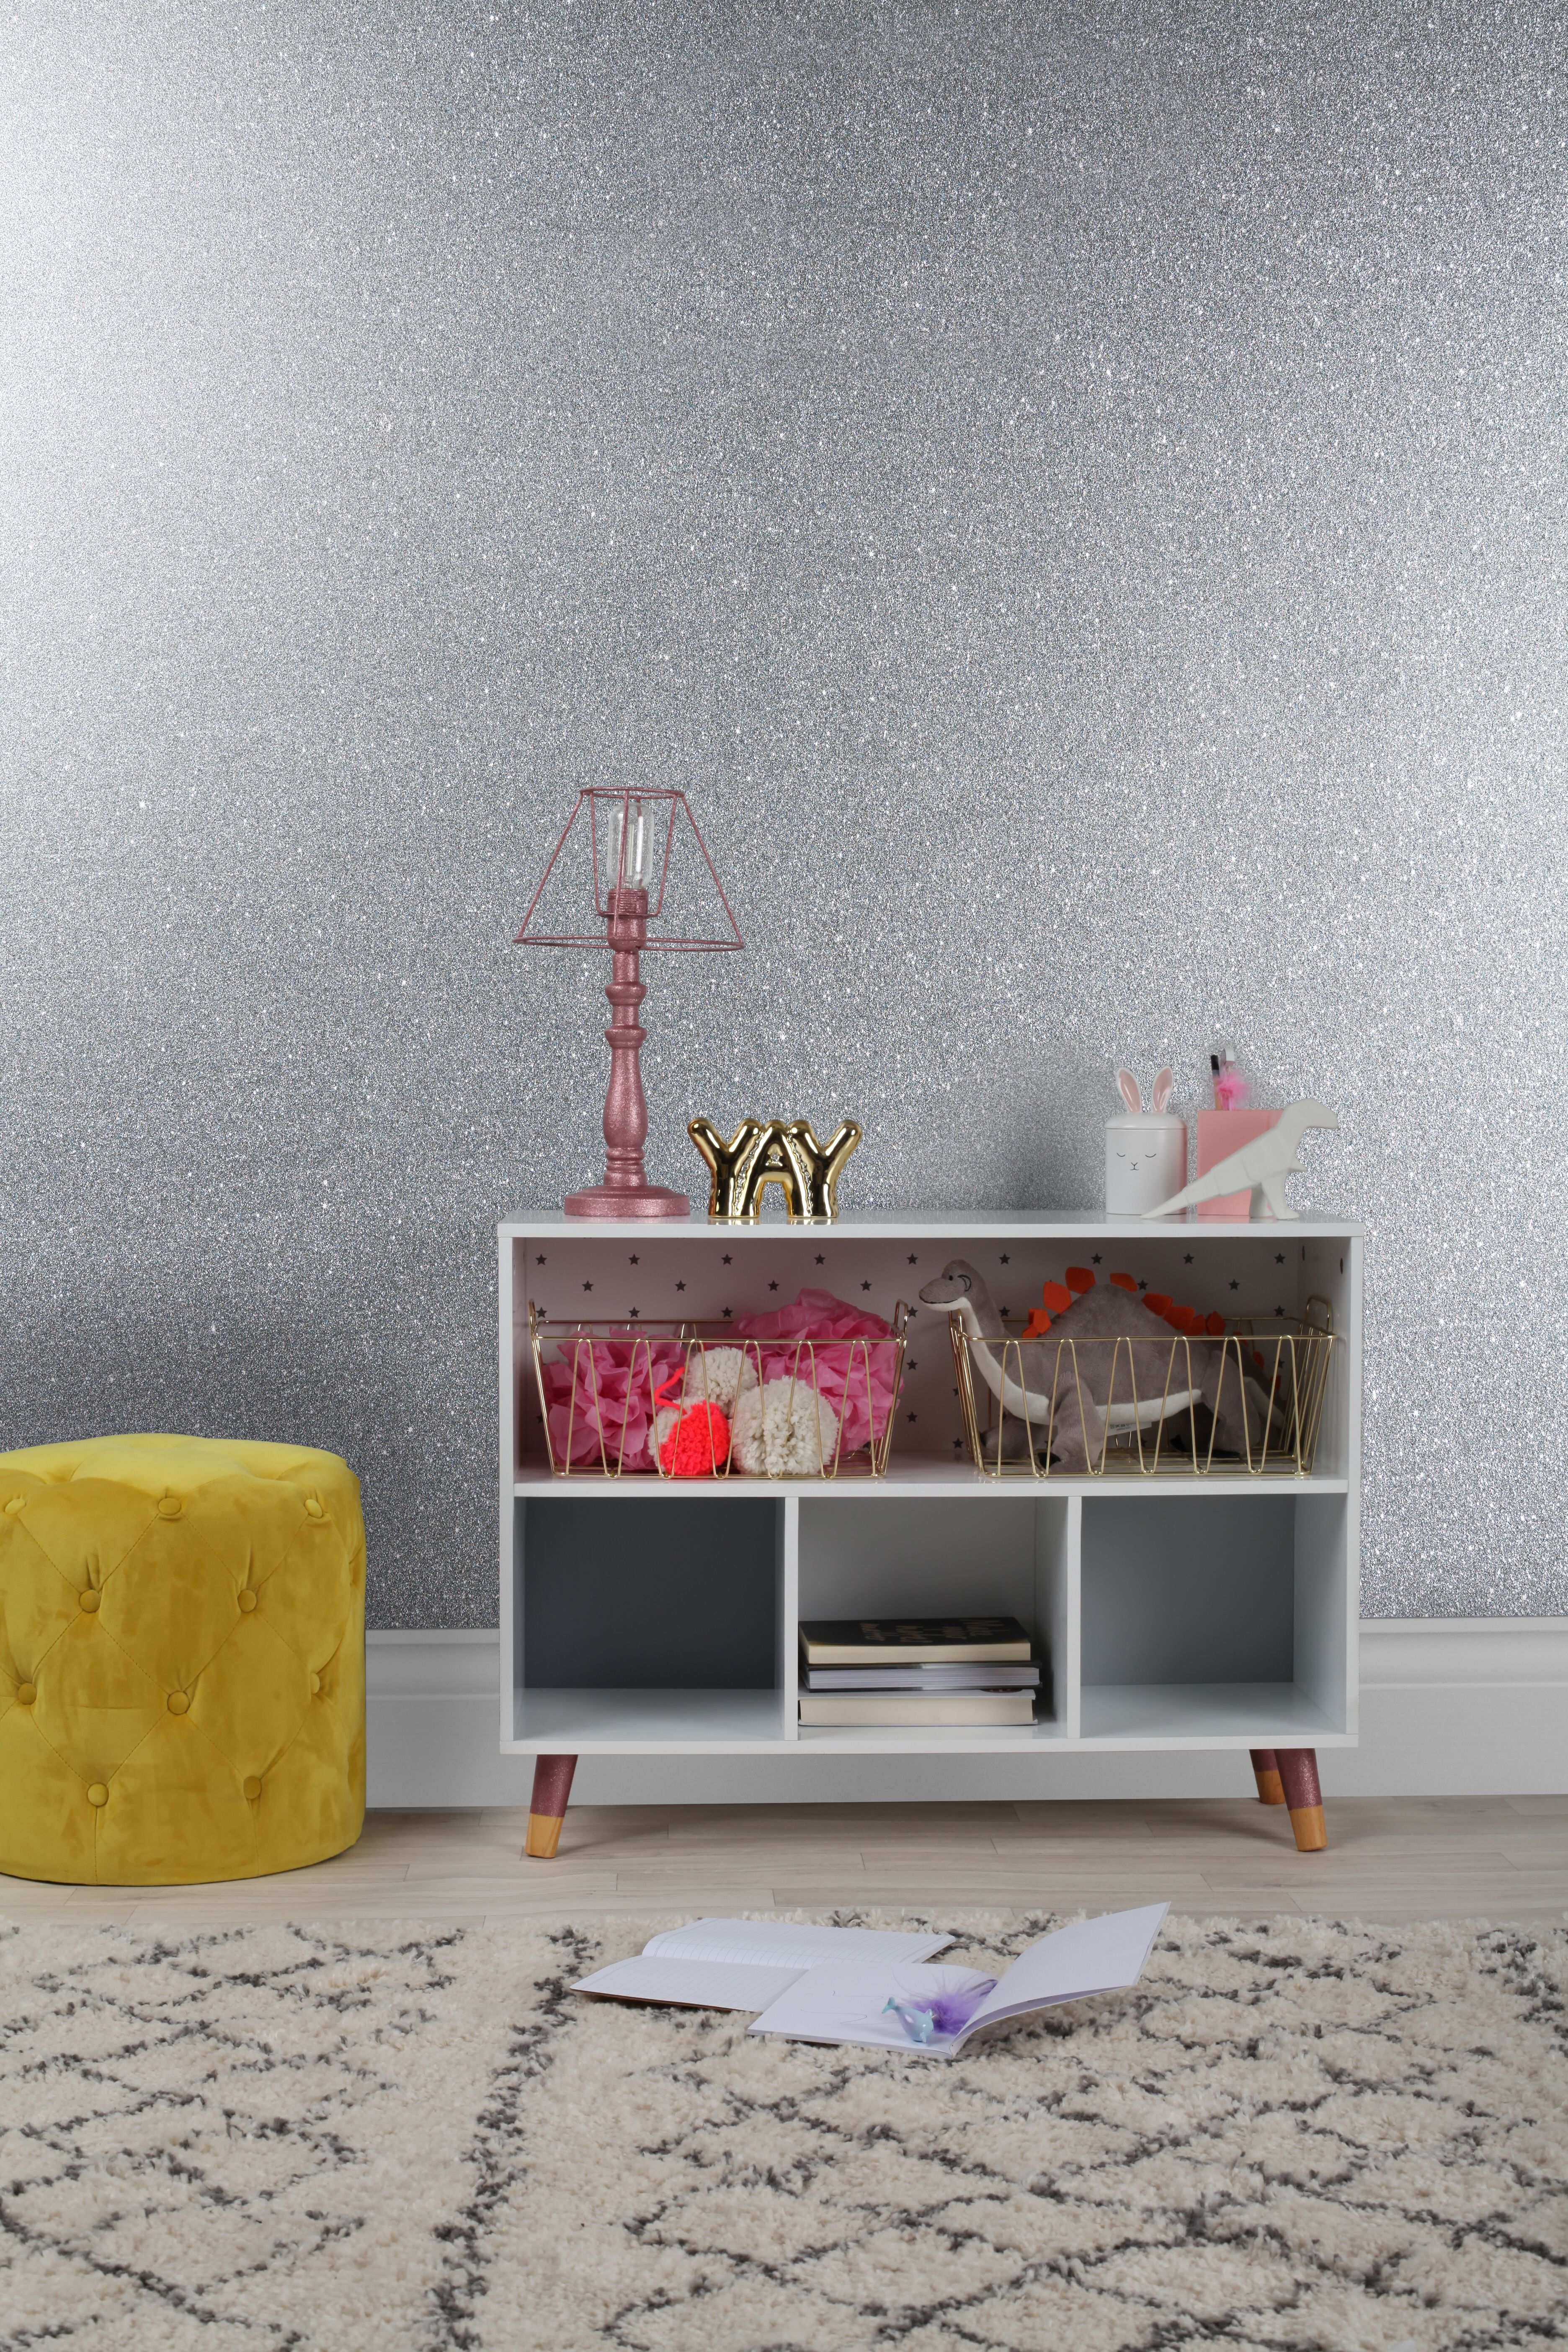 Rust Oleum Ultra Shimmer Silver Glitter 750ml Dipped Furniture